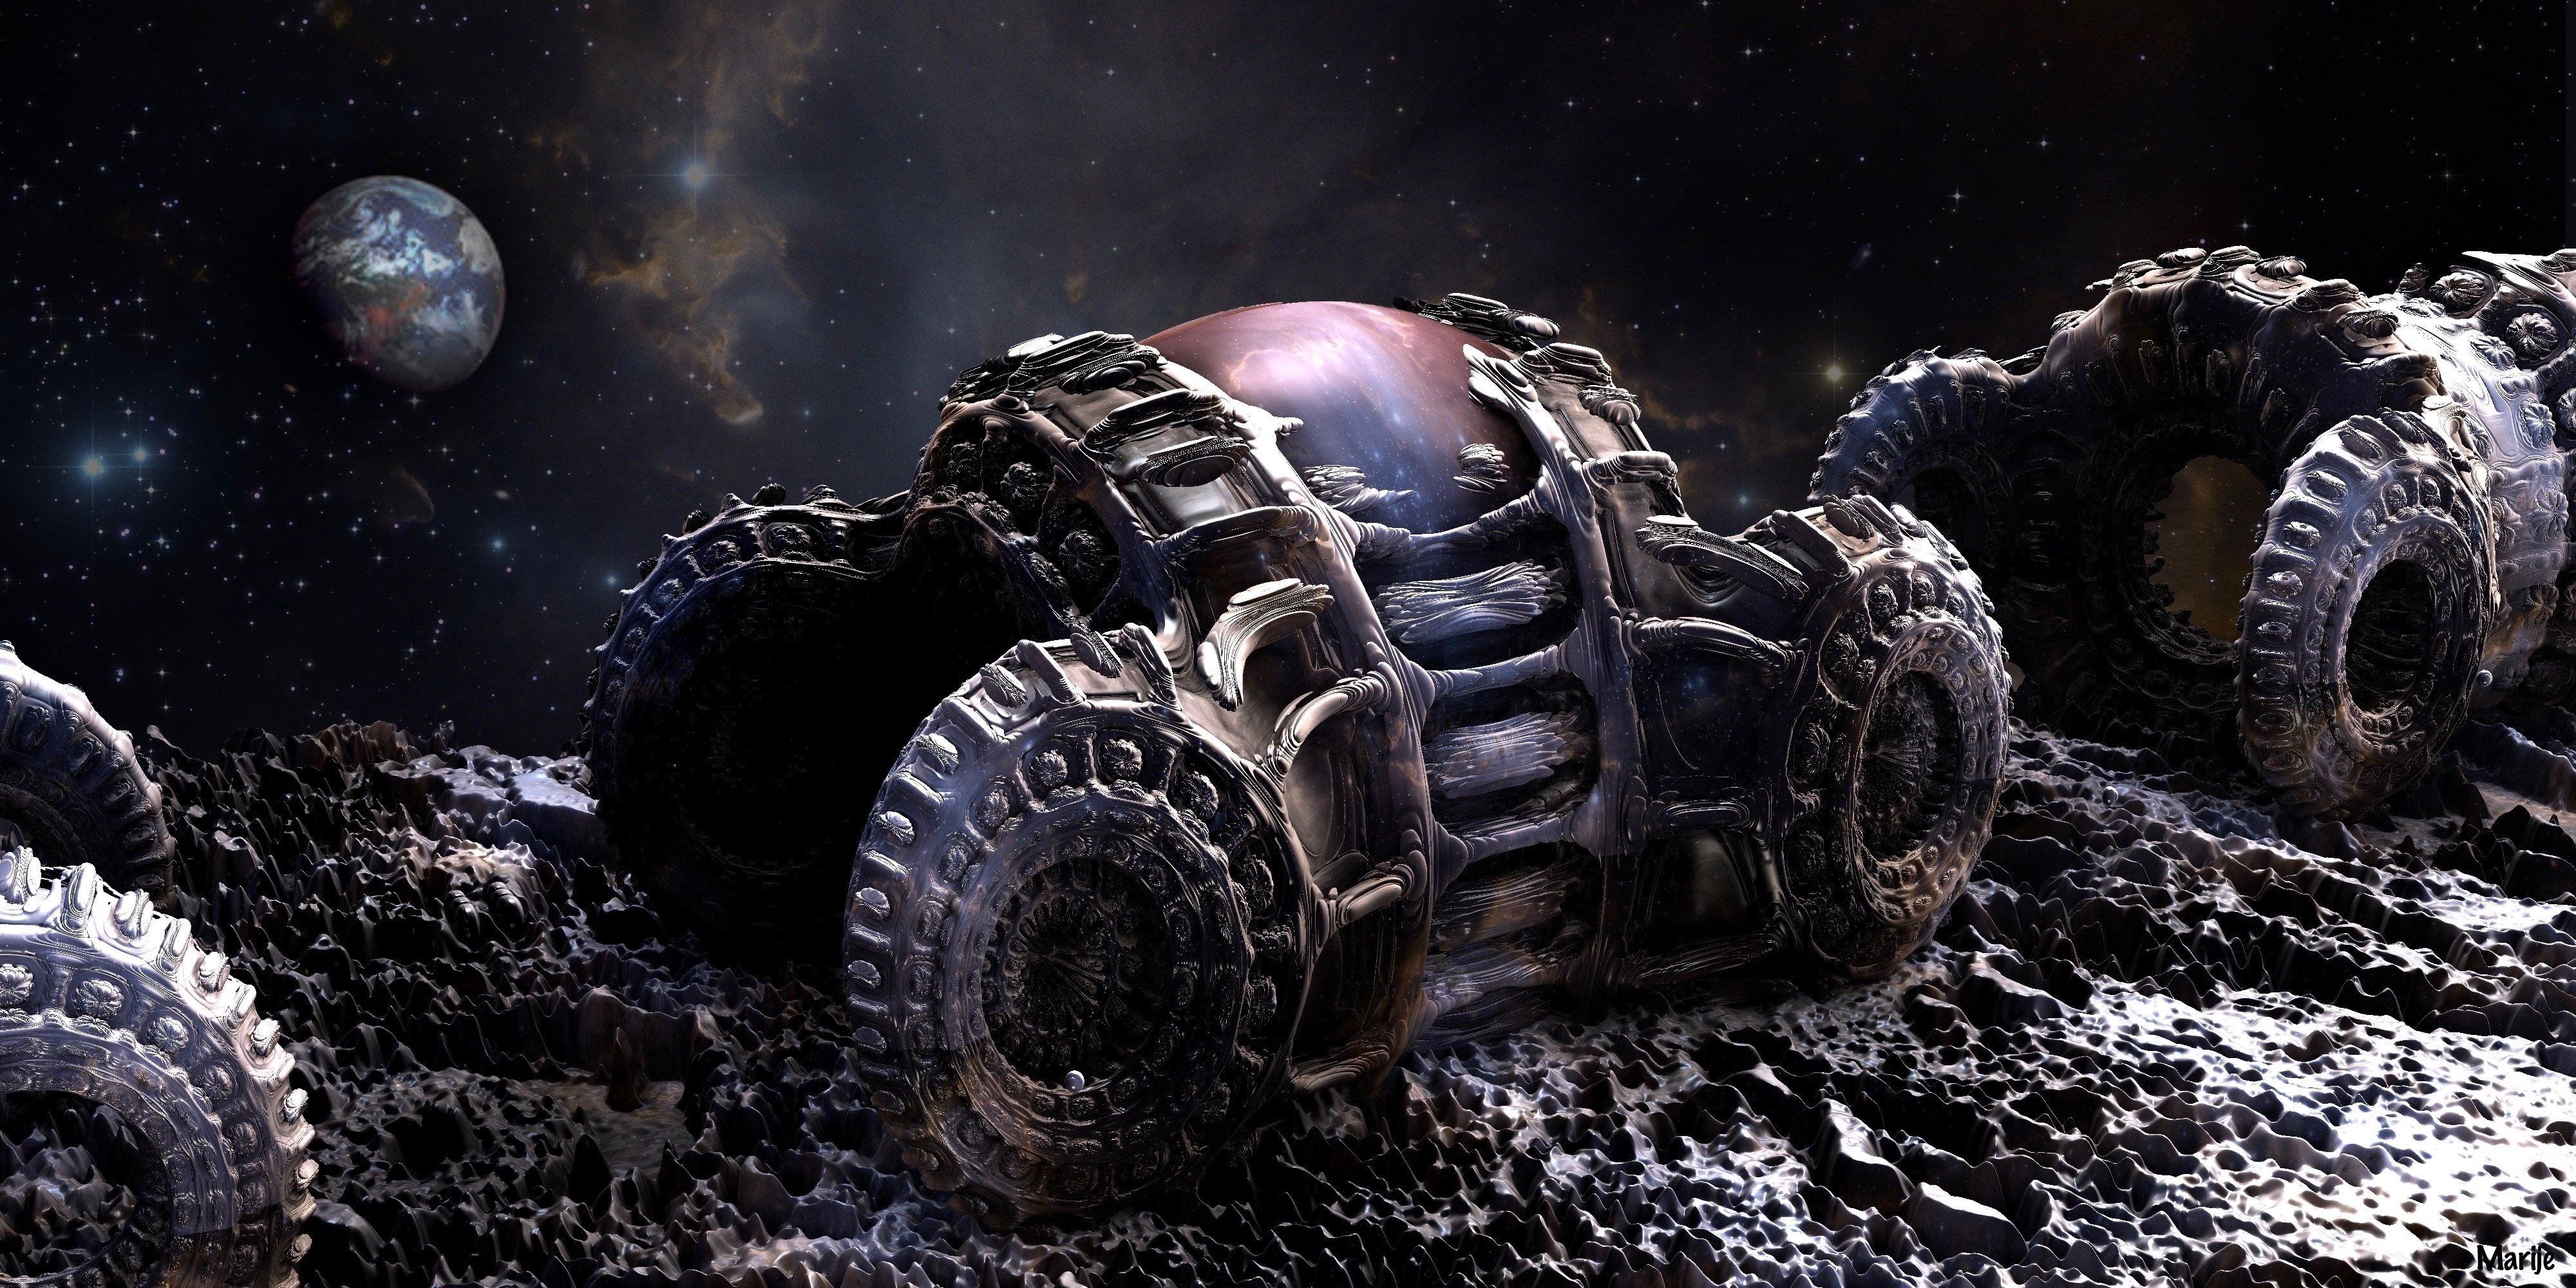 Space Cars on the Moon